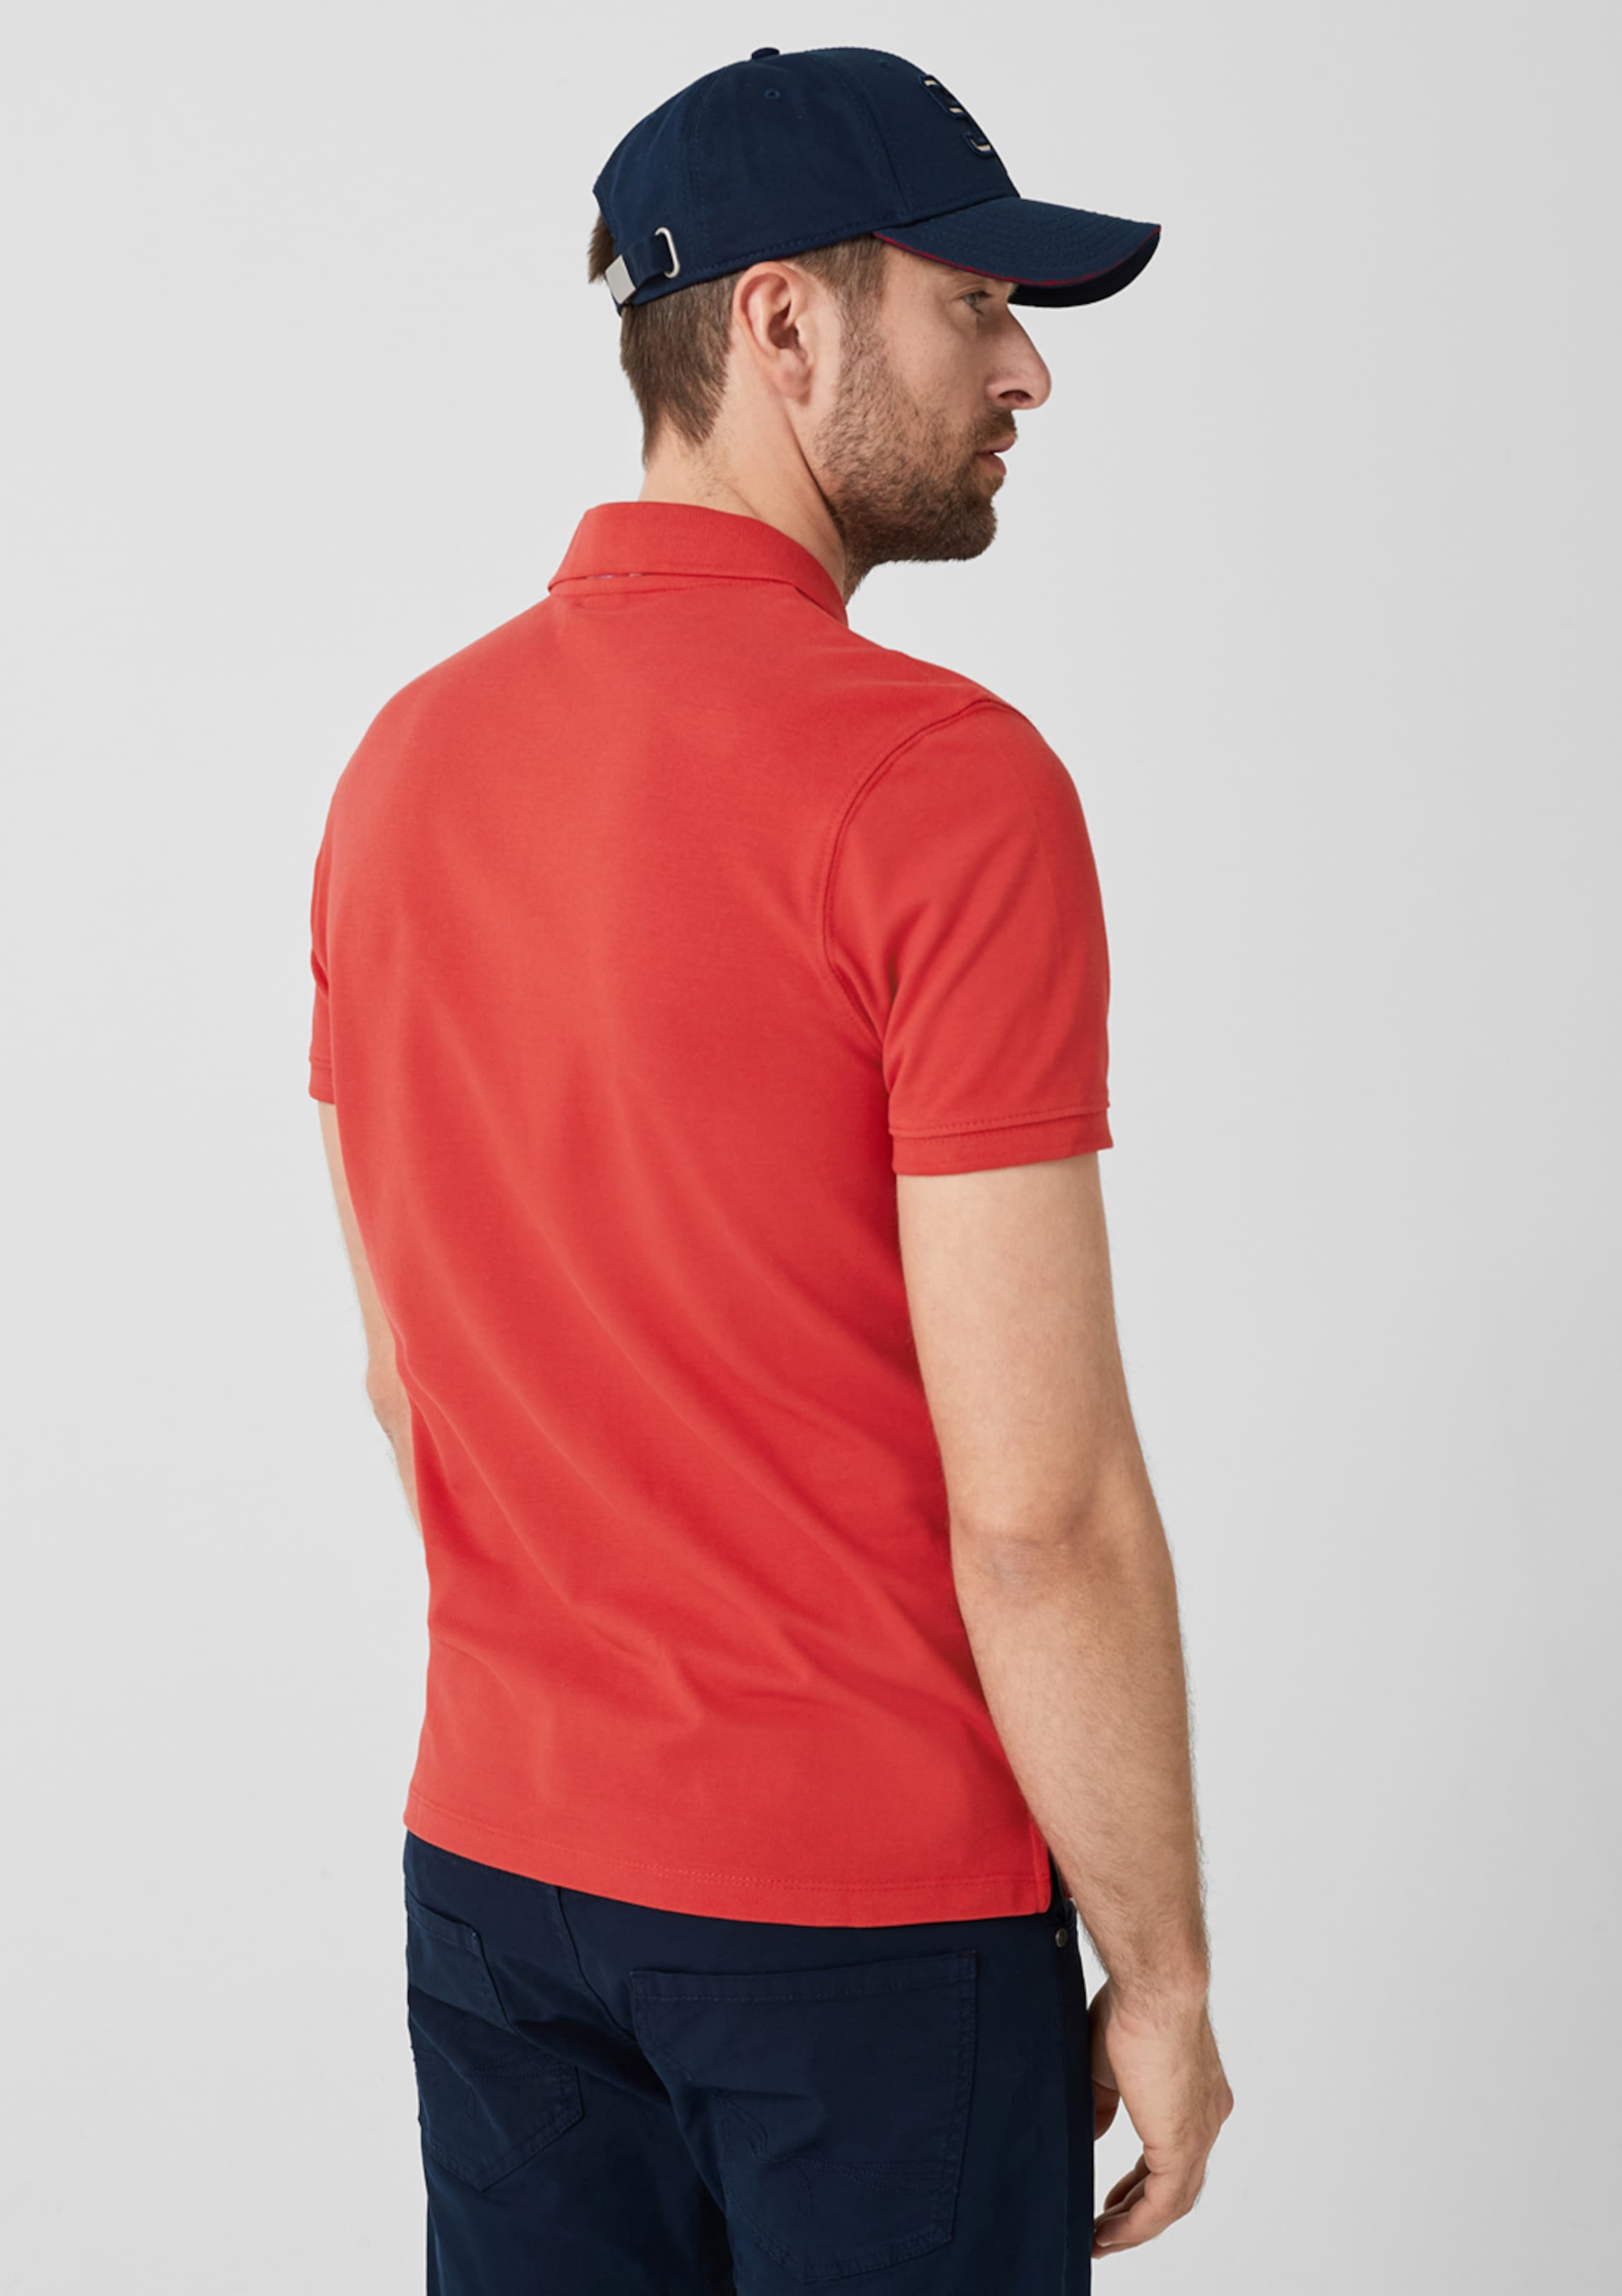 Rot oliver Label In S Red Poloshirt hdtsCQrxB